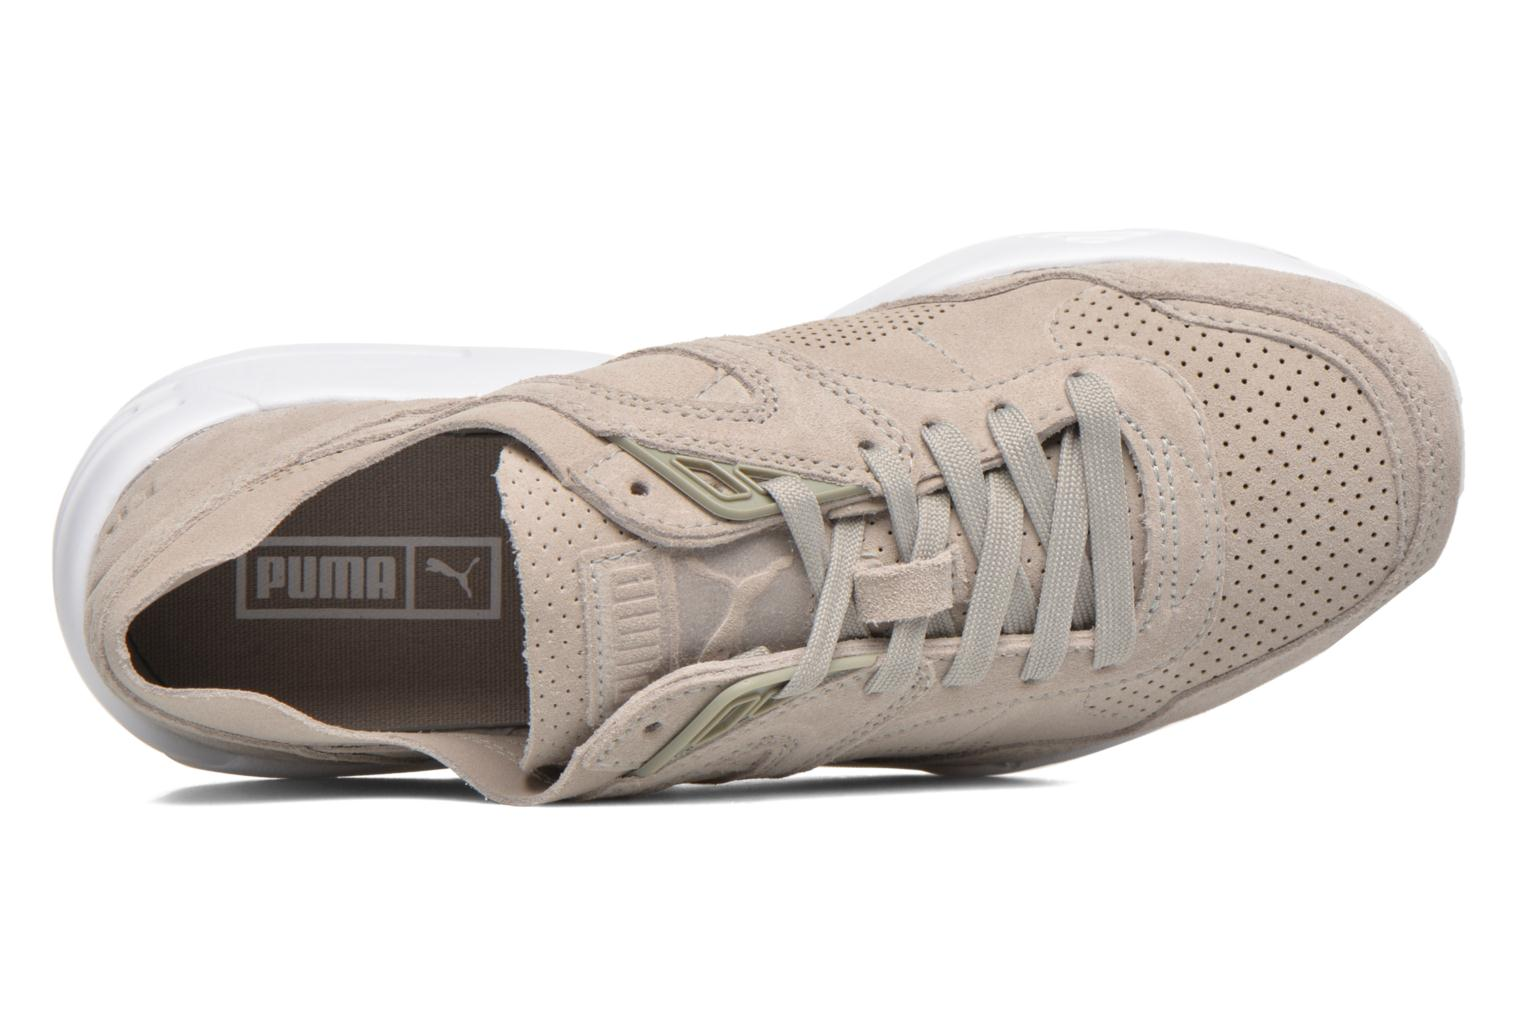 R698 Soft Pack Drizzle-Silver-White